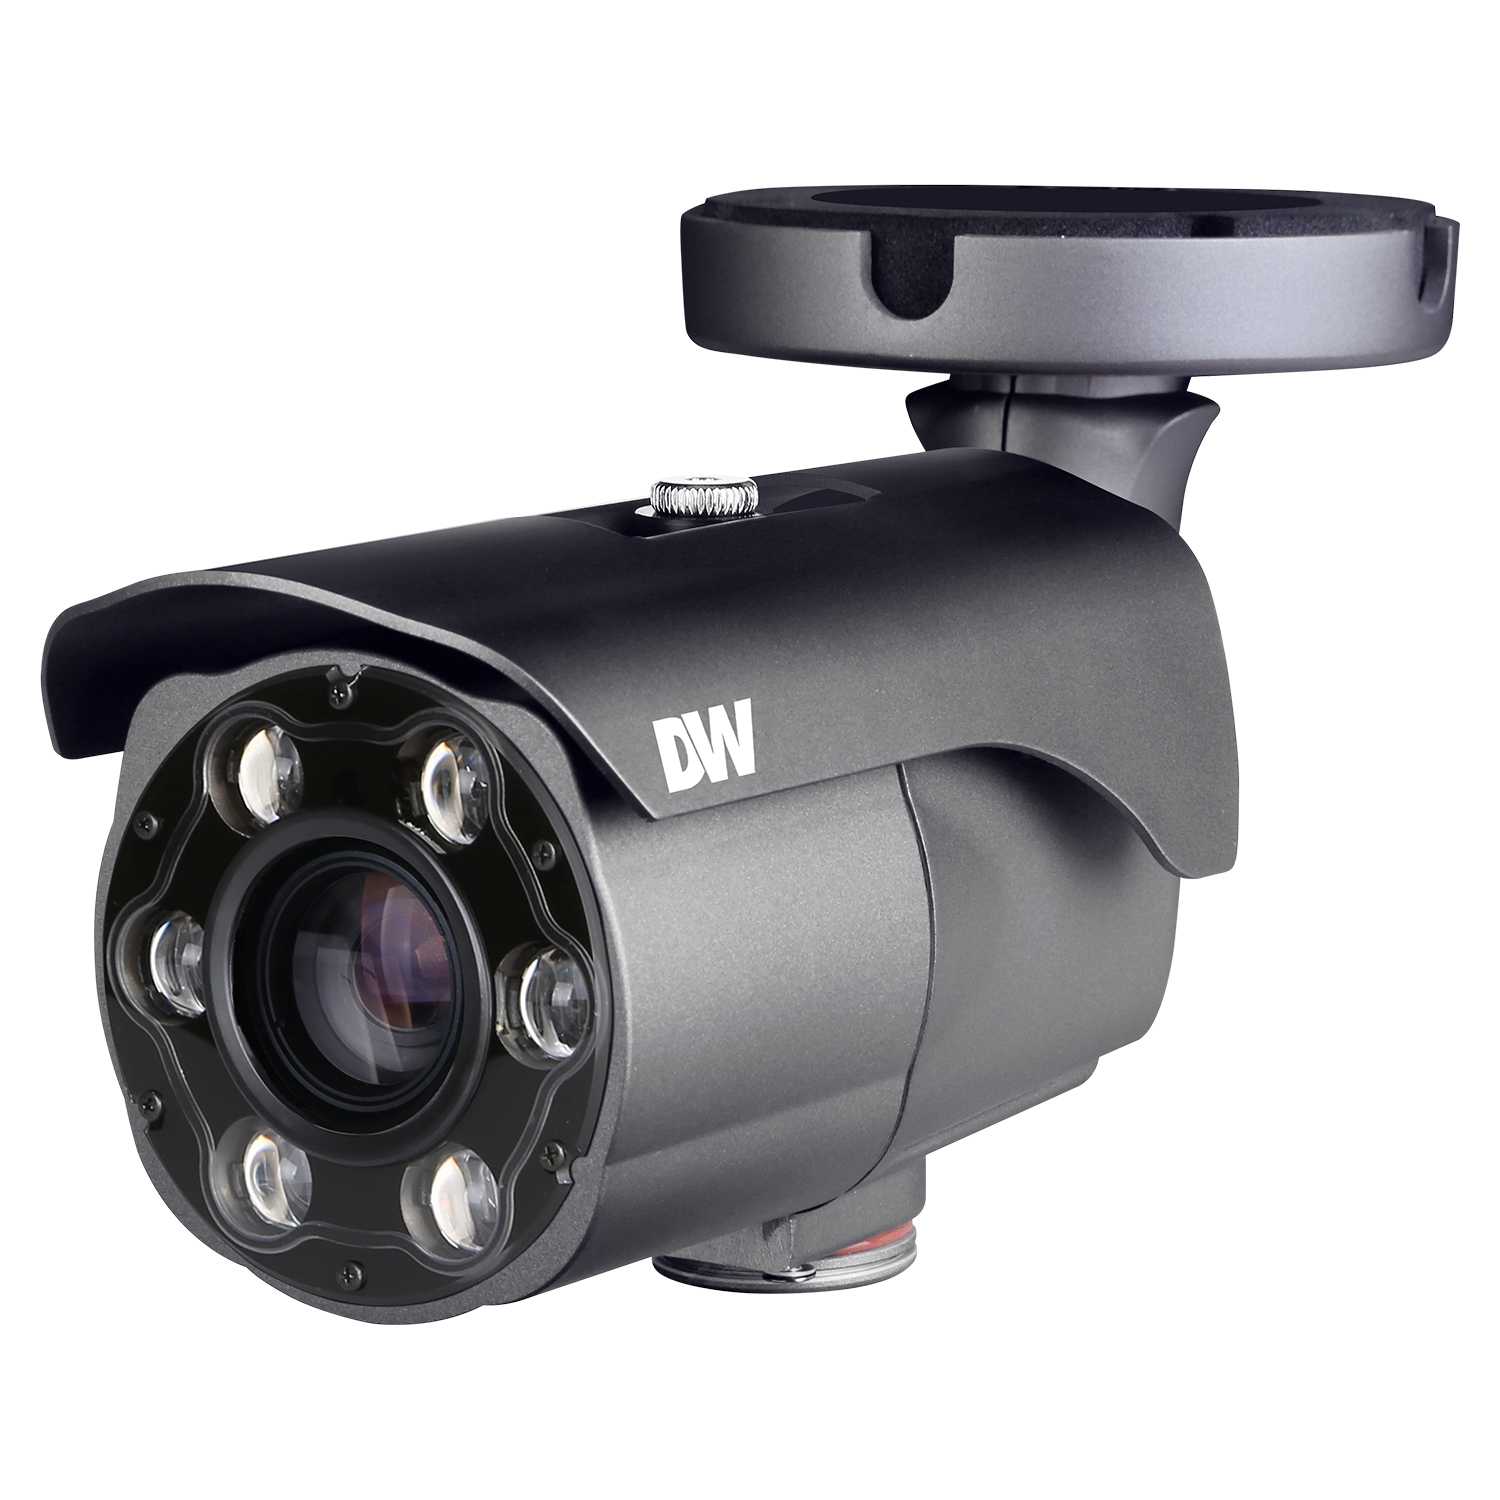 DWC-MB44iALPR DIGITAL WATCHDOG MEGApix Weatherproof LPR Bullet, 4MP 1/3 Cmos Sensor @ 30fps, 6-50MM Varifocal Motorized Zoom with Autofocus P-Iris Lens, 60ft Smart IR, Dual Codecs (H.264,MJEPG), Smart DNR, AGC, AWB, Programmable Privacy Zones, Two Way Audio, Alarm Input, Relay Output, Web Server Built in, Cold Start -40F(-40C), Micro SD/SDHC/SDXC Class 10 Card Slot (card not included), Onvif Profile S, IP66, PoE and 12VDC, 5 Year Warranty, Captures licenses plates up to 50mph with up to 60ft capture range. ************************* SPECIAL ORDER ITEM NO RETURNS OR SUBJECT TO RESTOCK FEE *************************